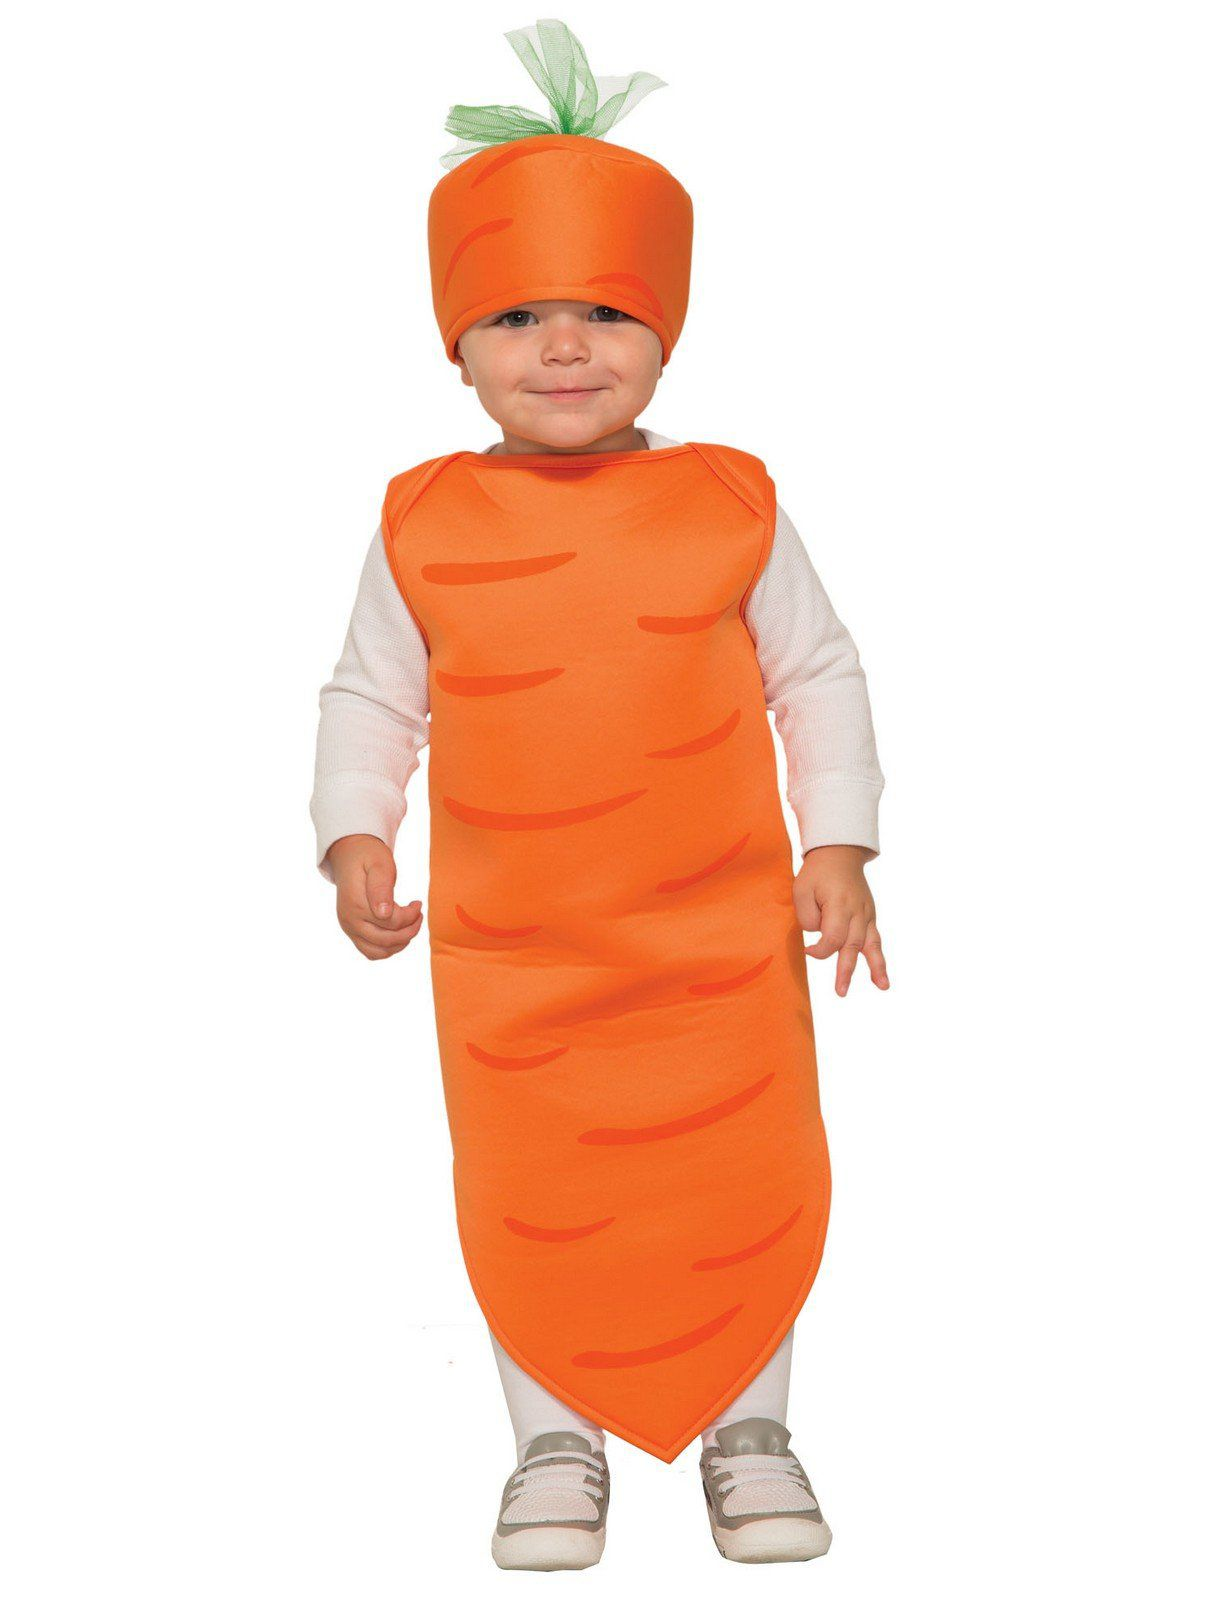 carrot costume for infants - baby/toddler costumes for 2018